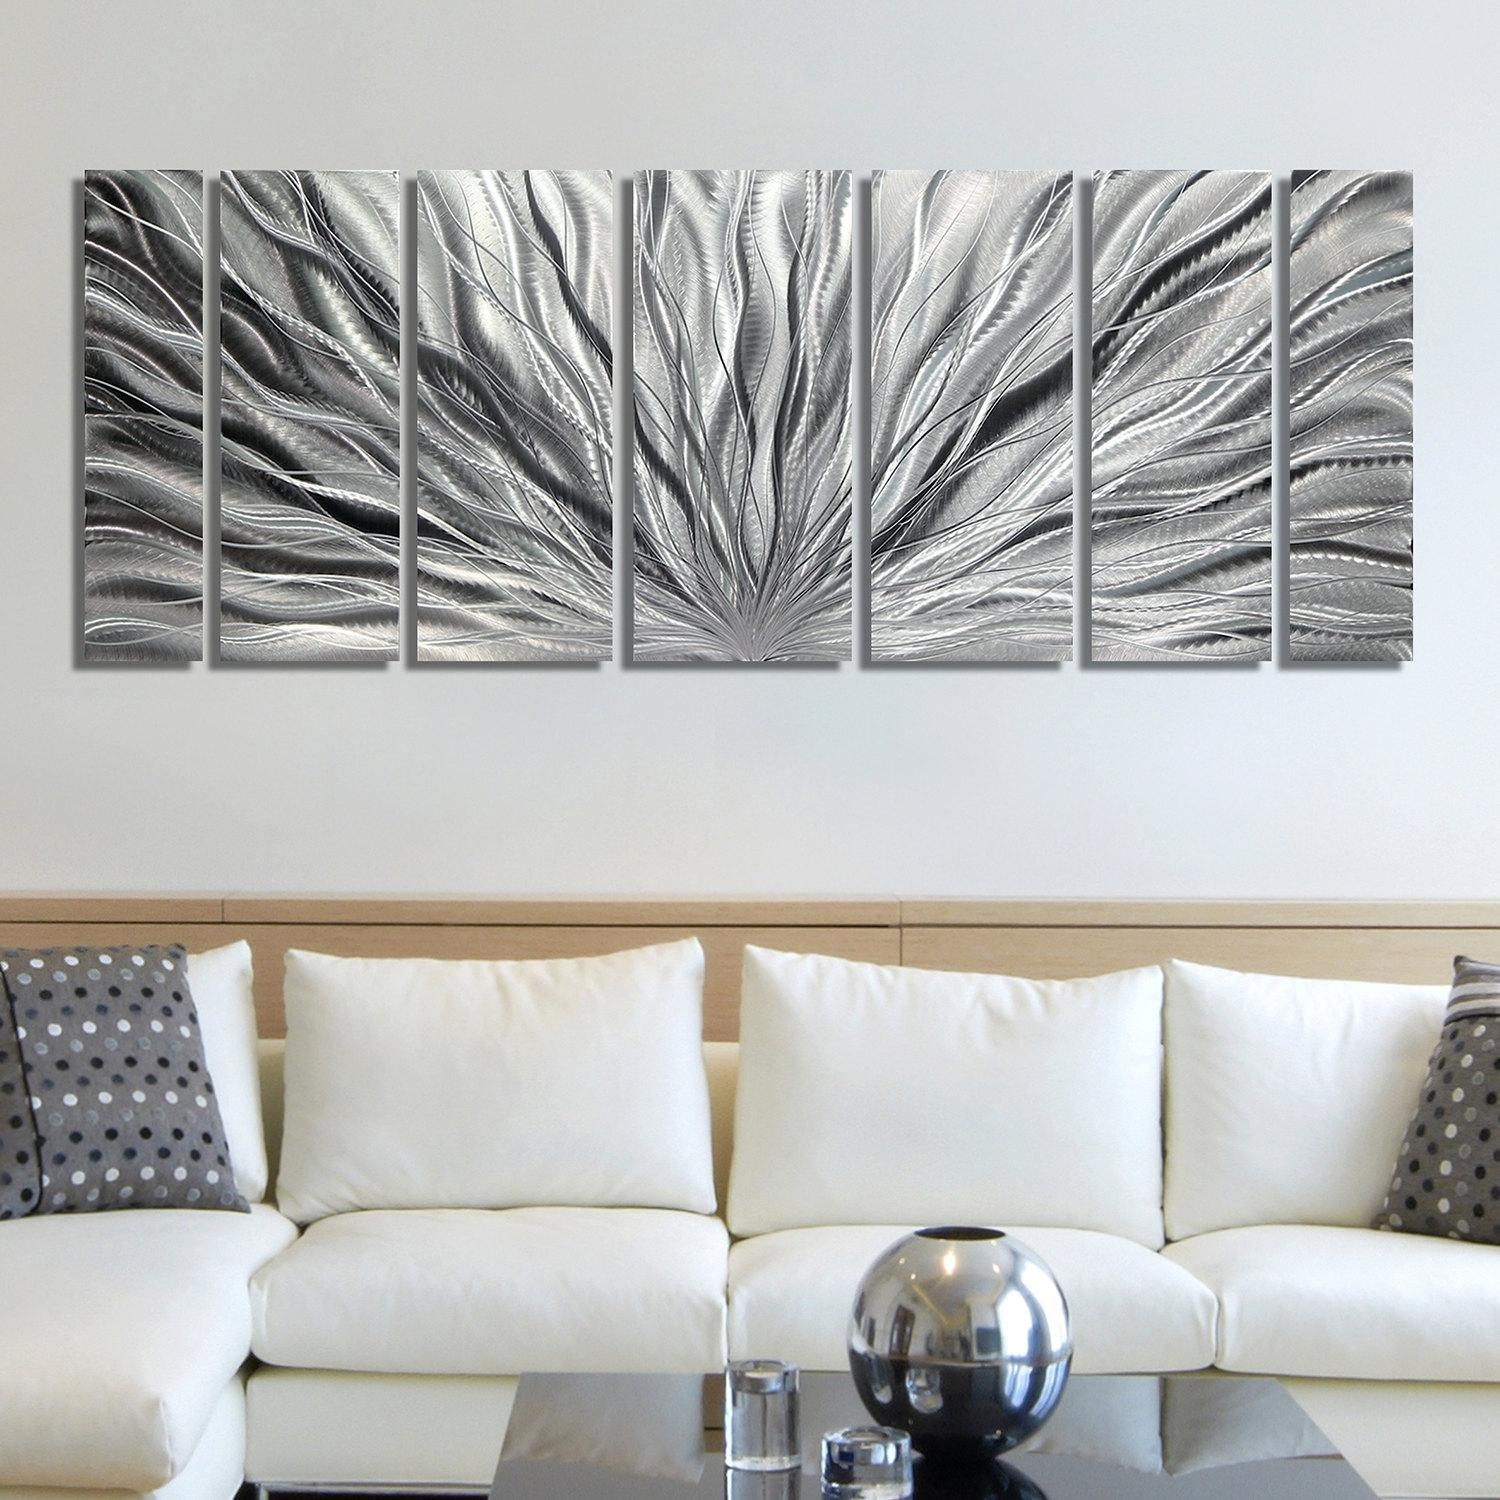 Sale Large Multi Panel Metal Wall Art In All Silver With Regard To Large Metal Wall Art Sculptures (Image 15 of 20)